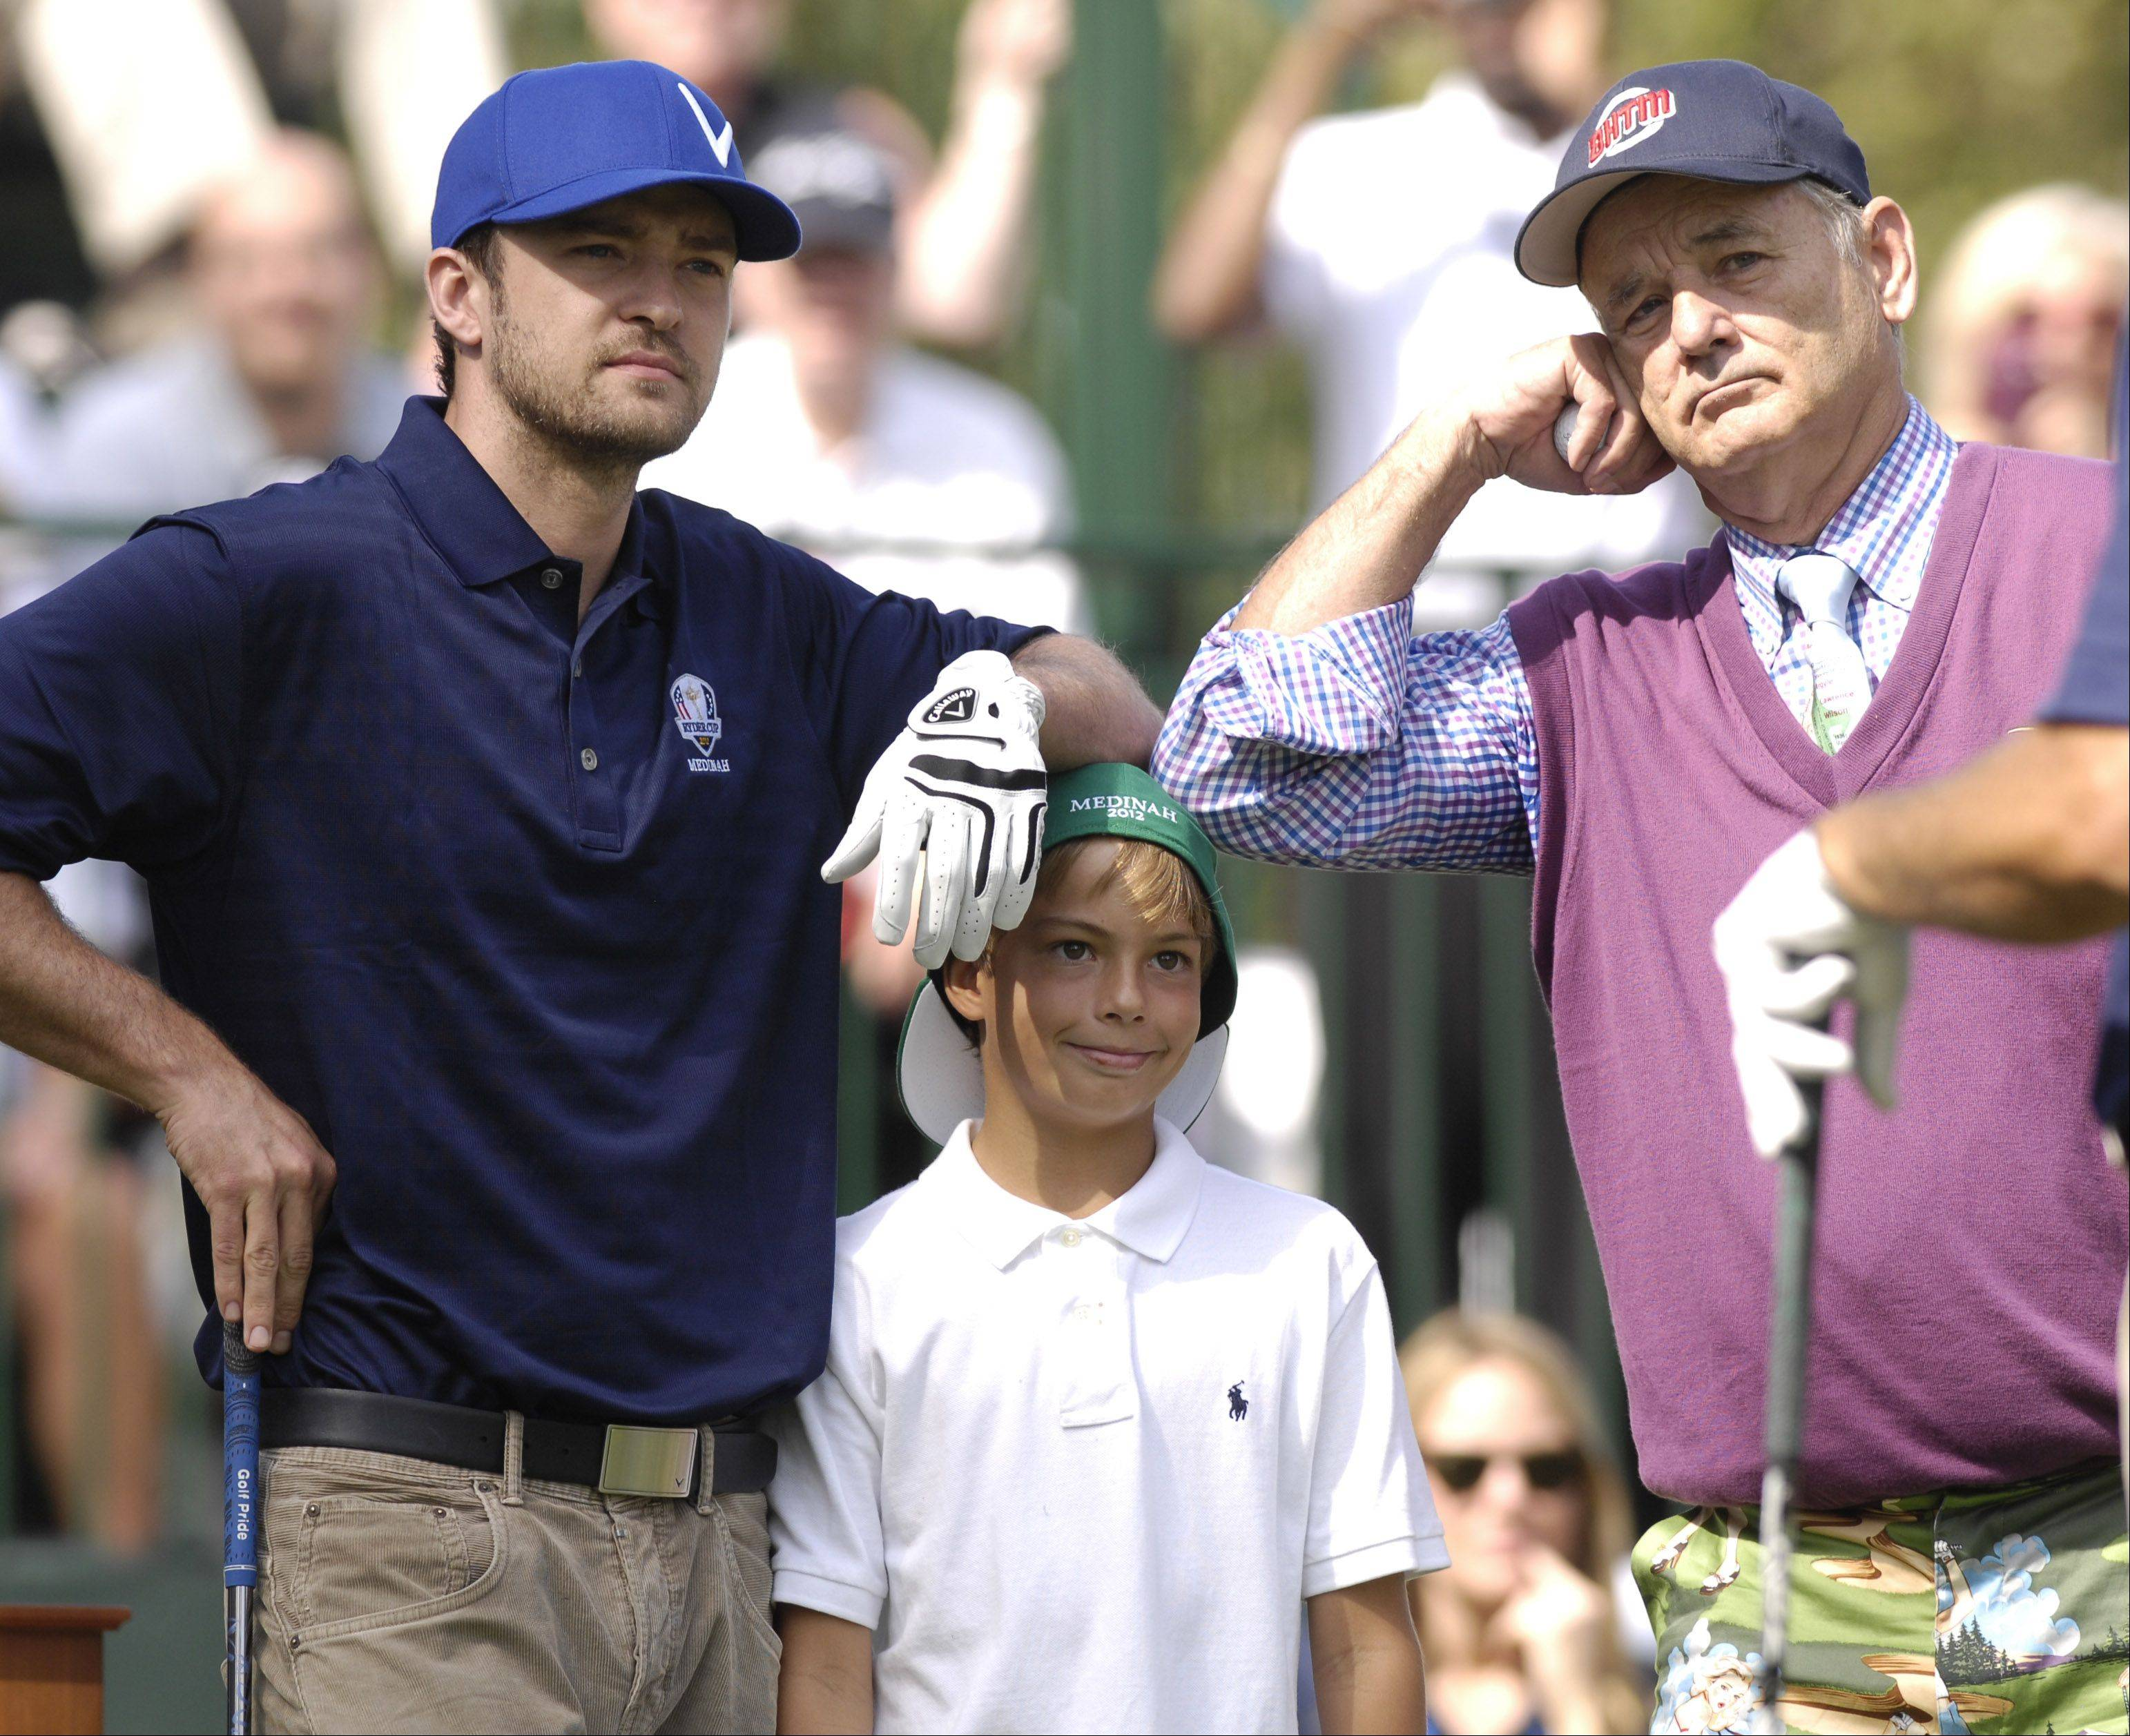 Murray, Timberlake big hits at Ryder Cup celebrity event